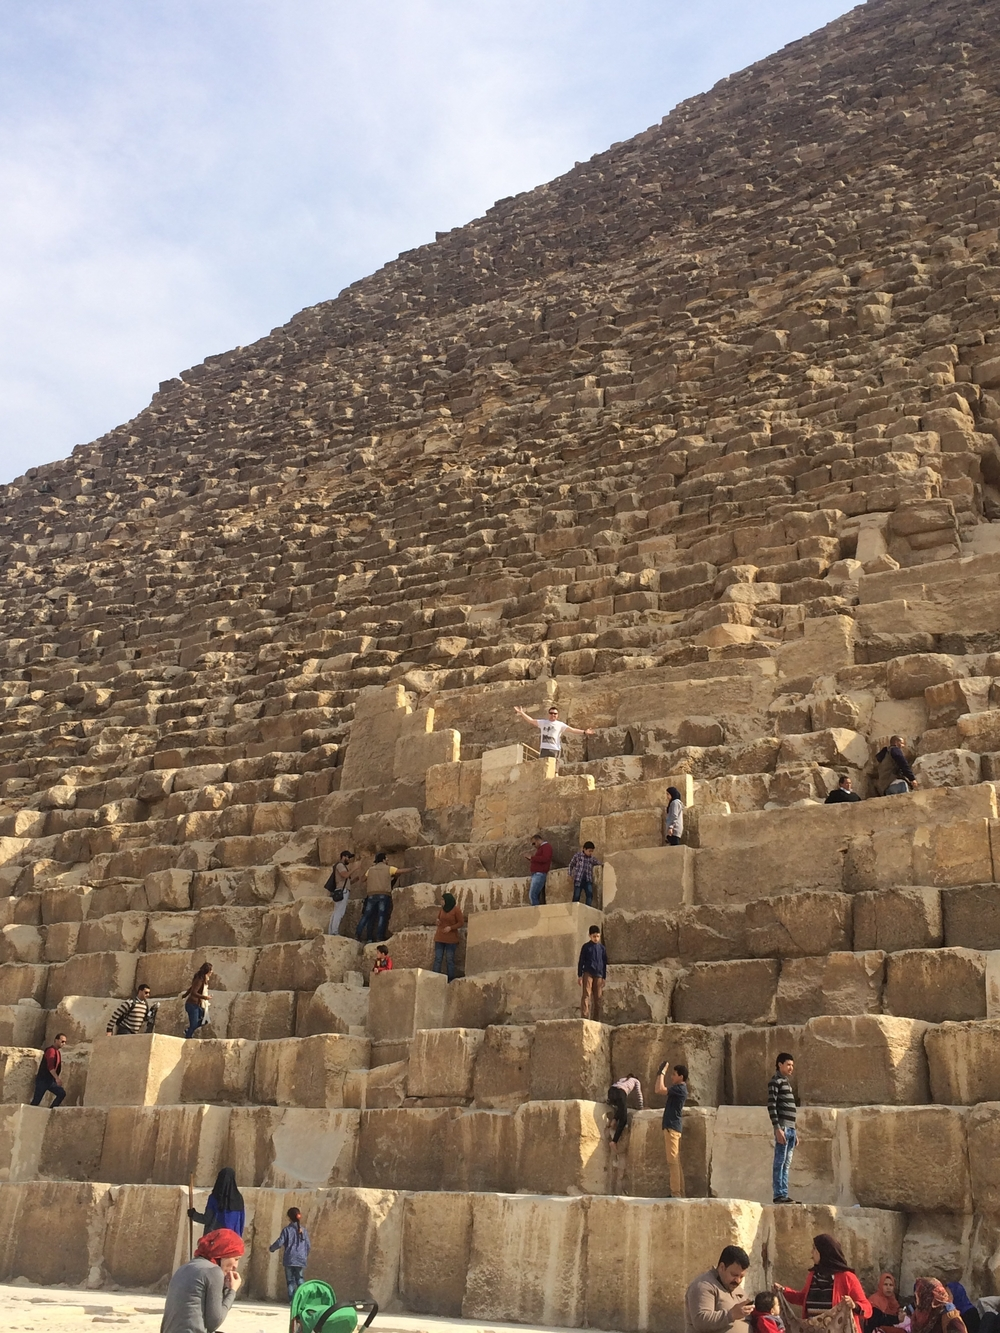 Me, having climbed up a few steps of the Great Pyramid of Giza